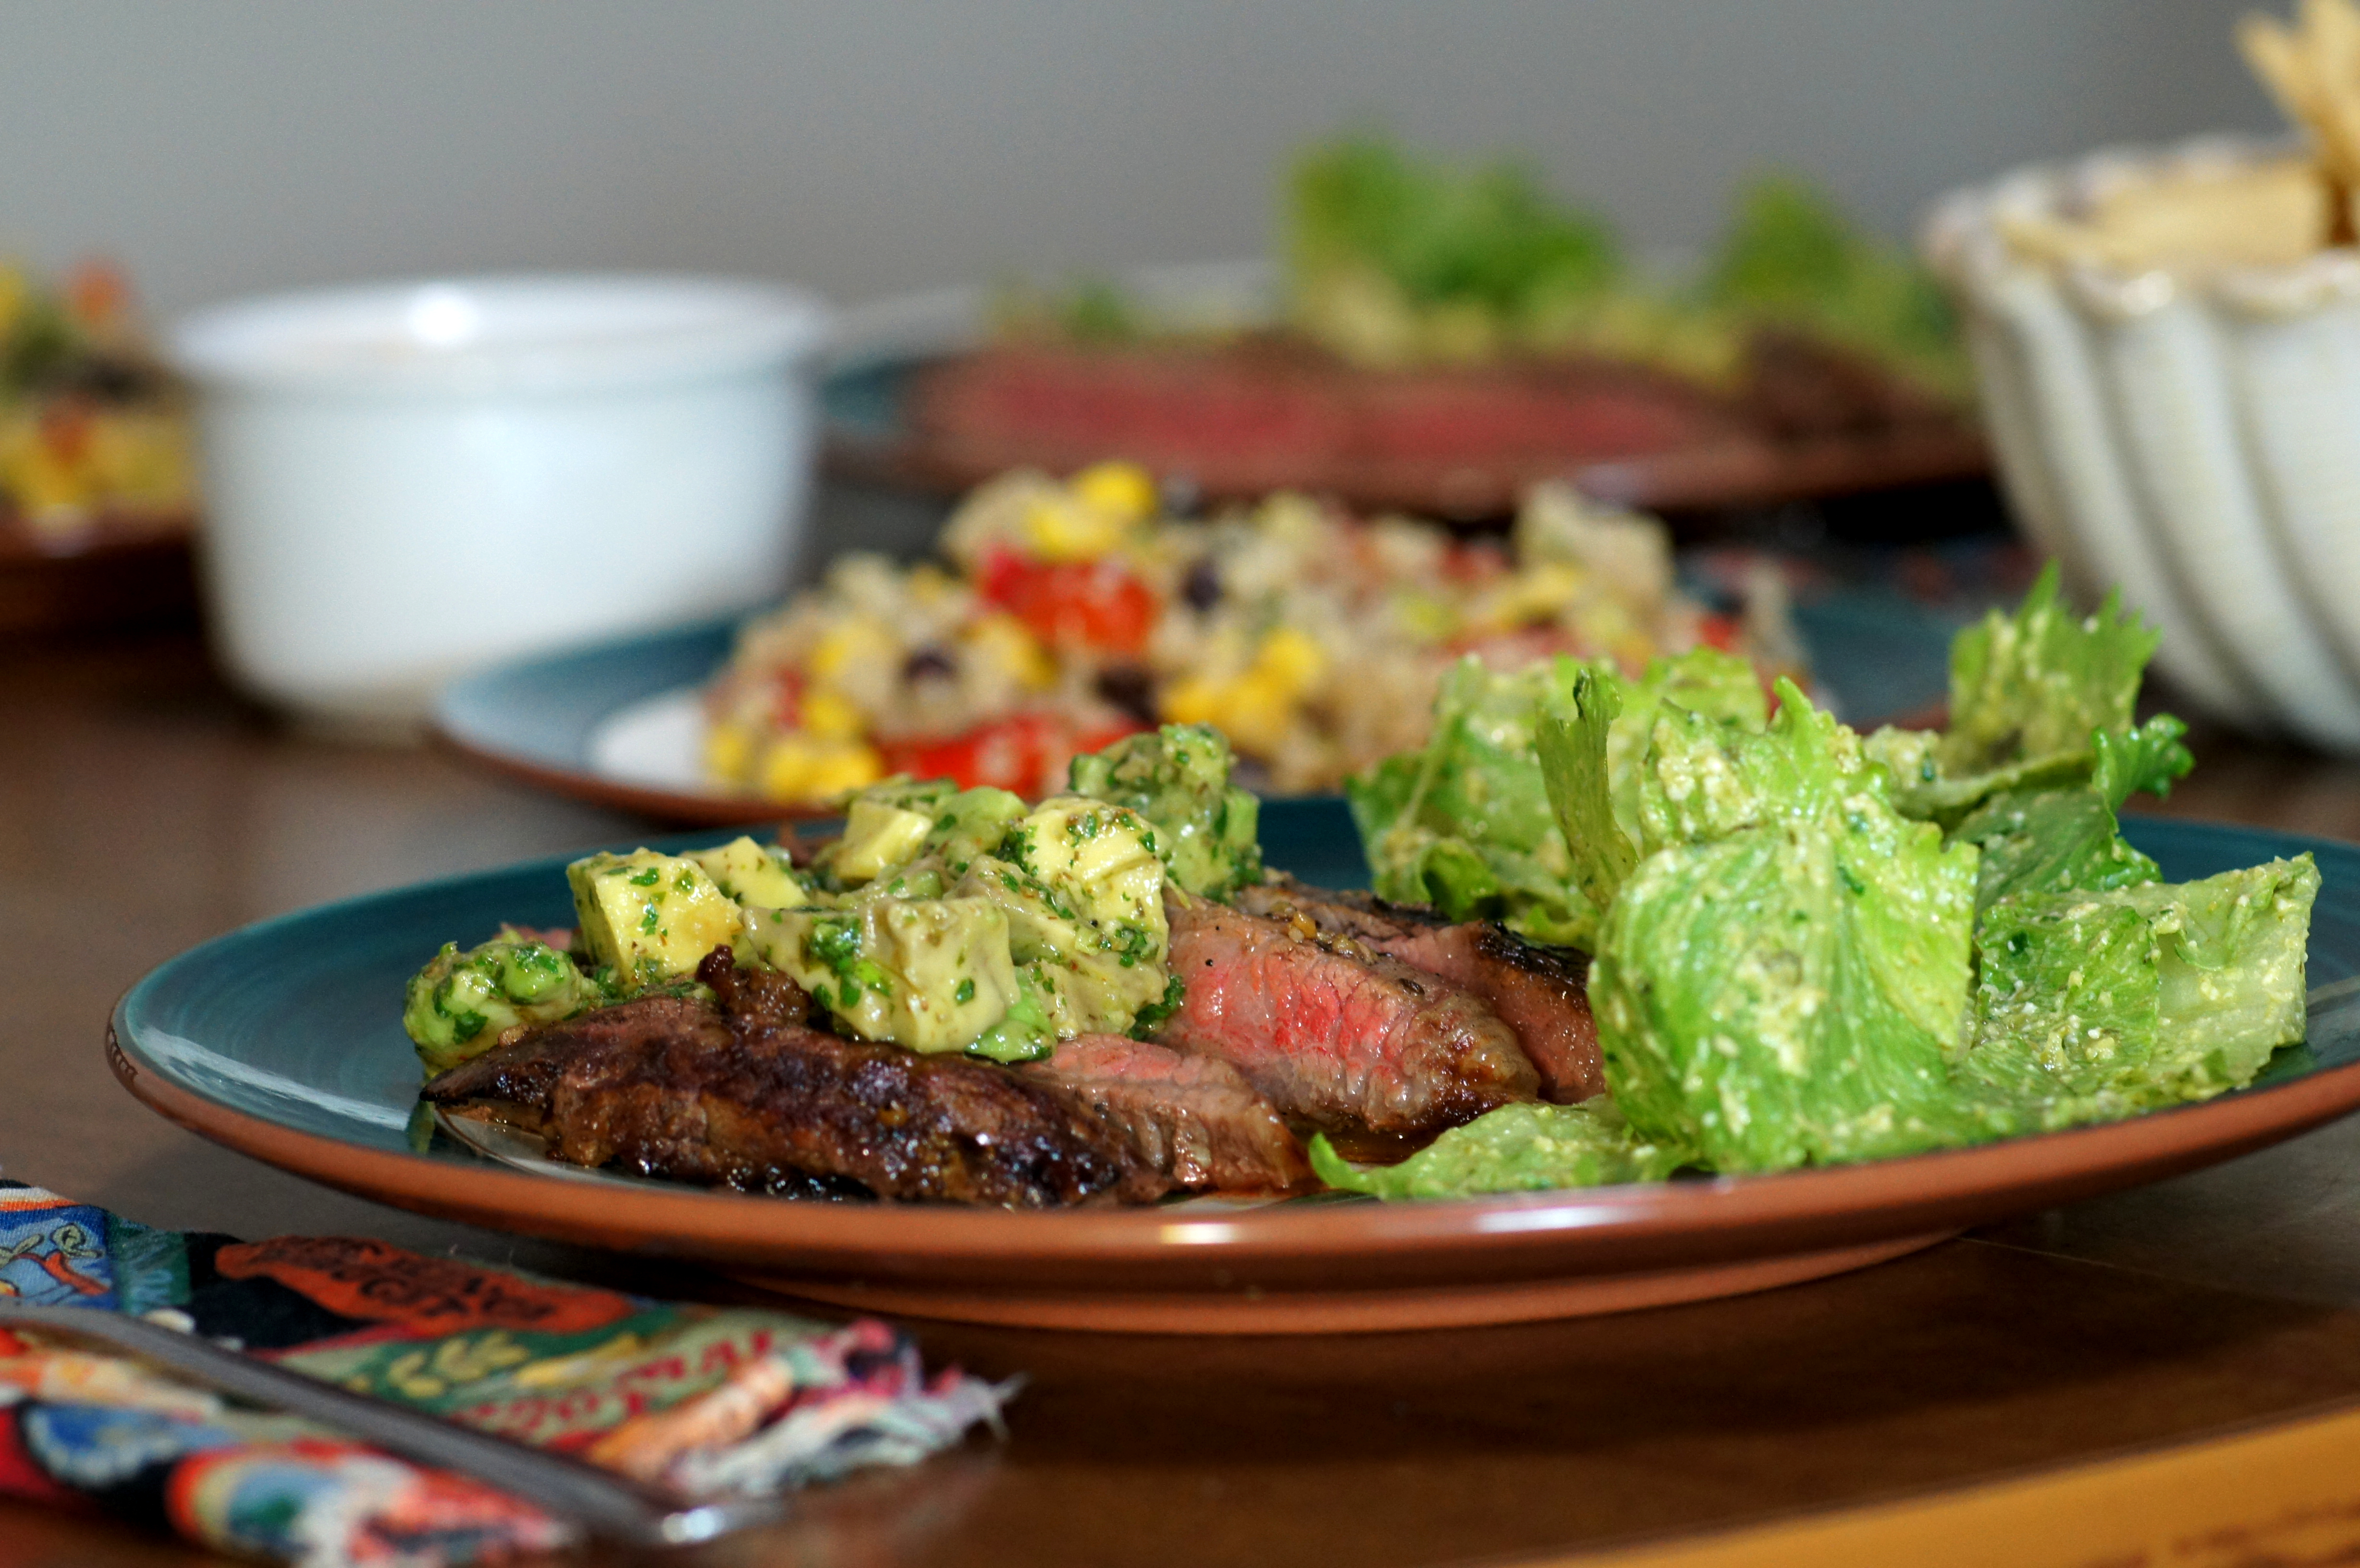 Churrasco with Avocado-Chimichurri Sauce and Mexican Cesar Salad